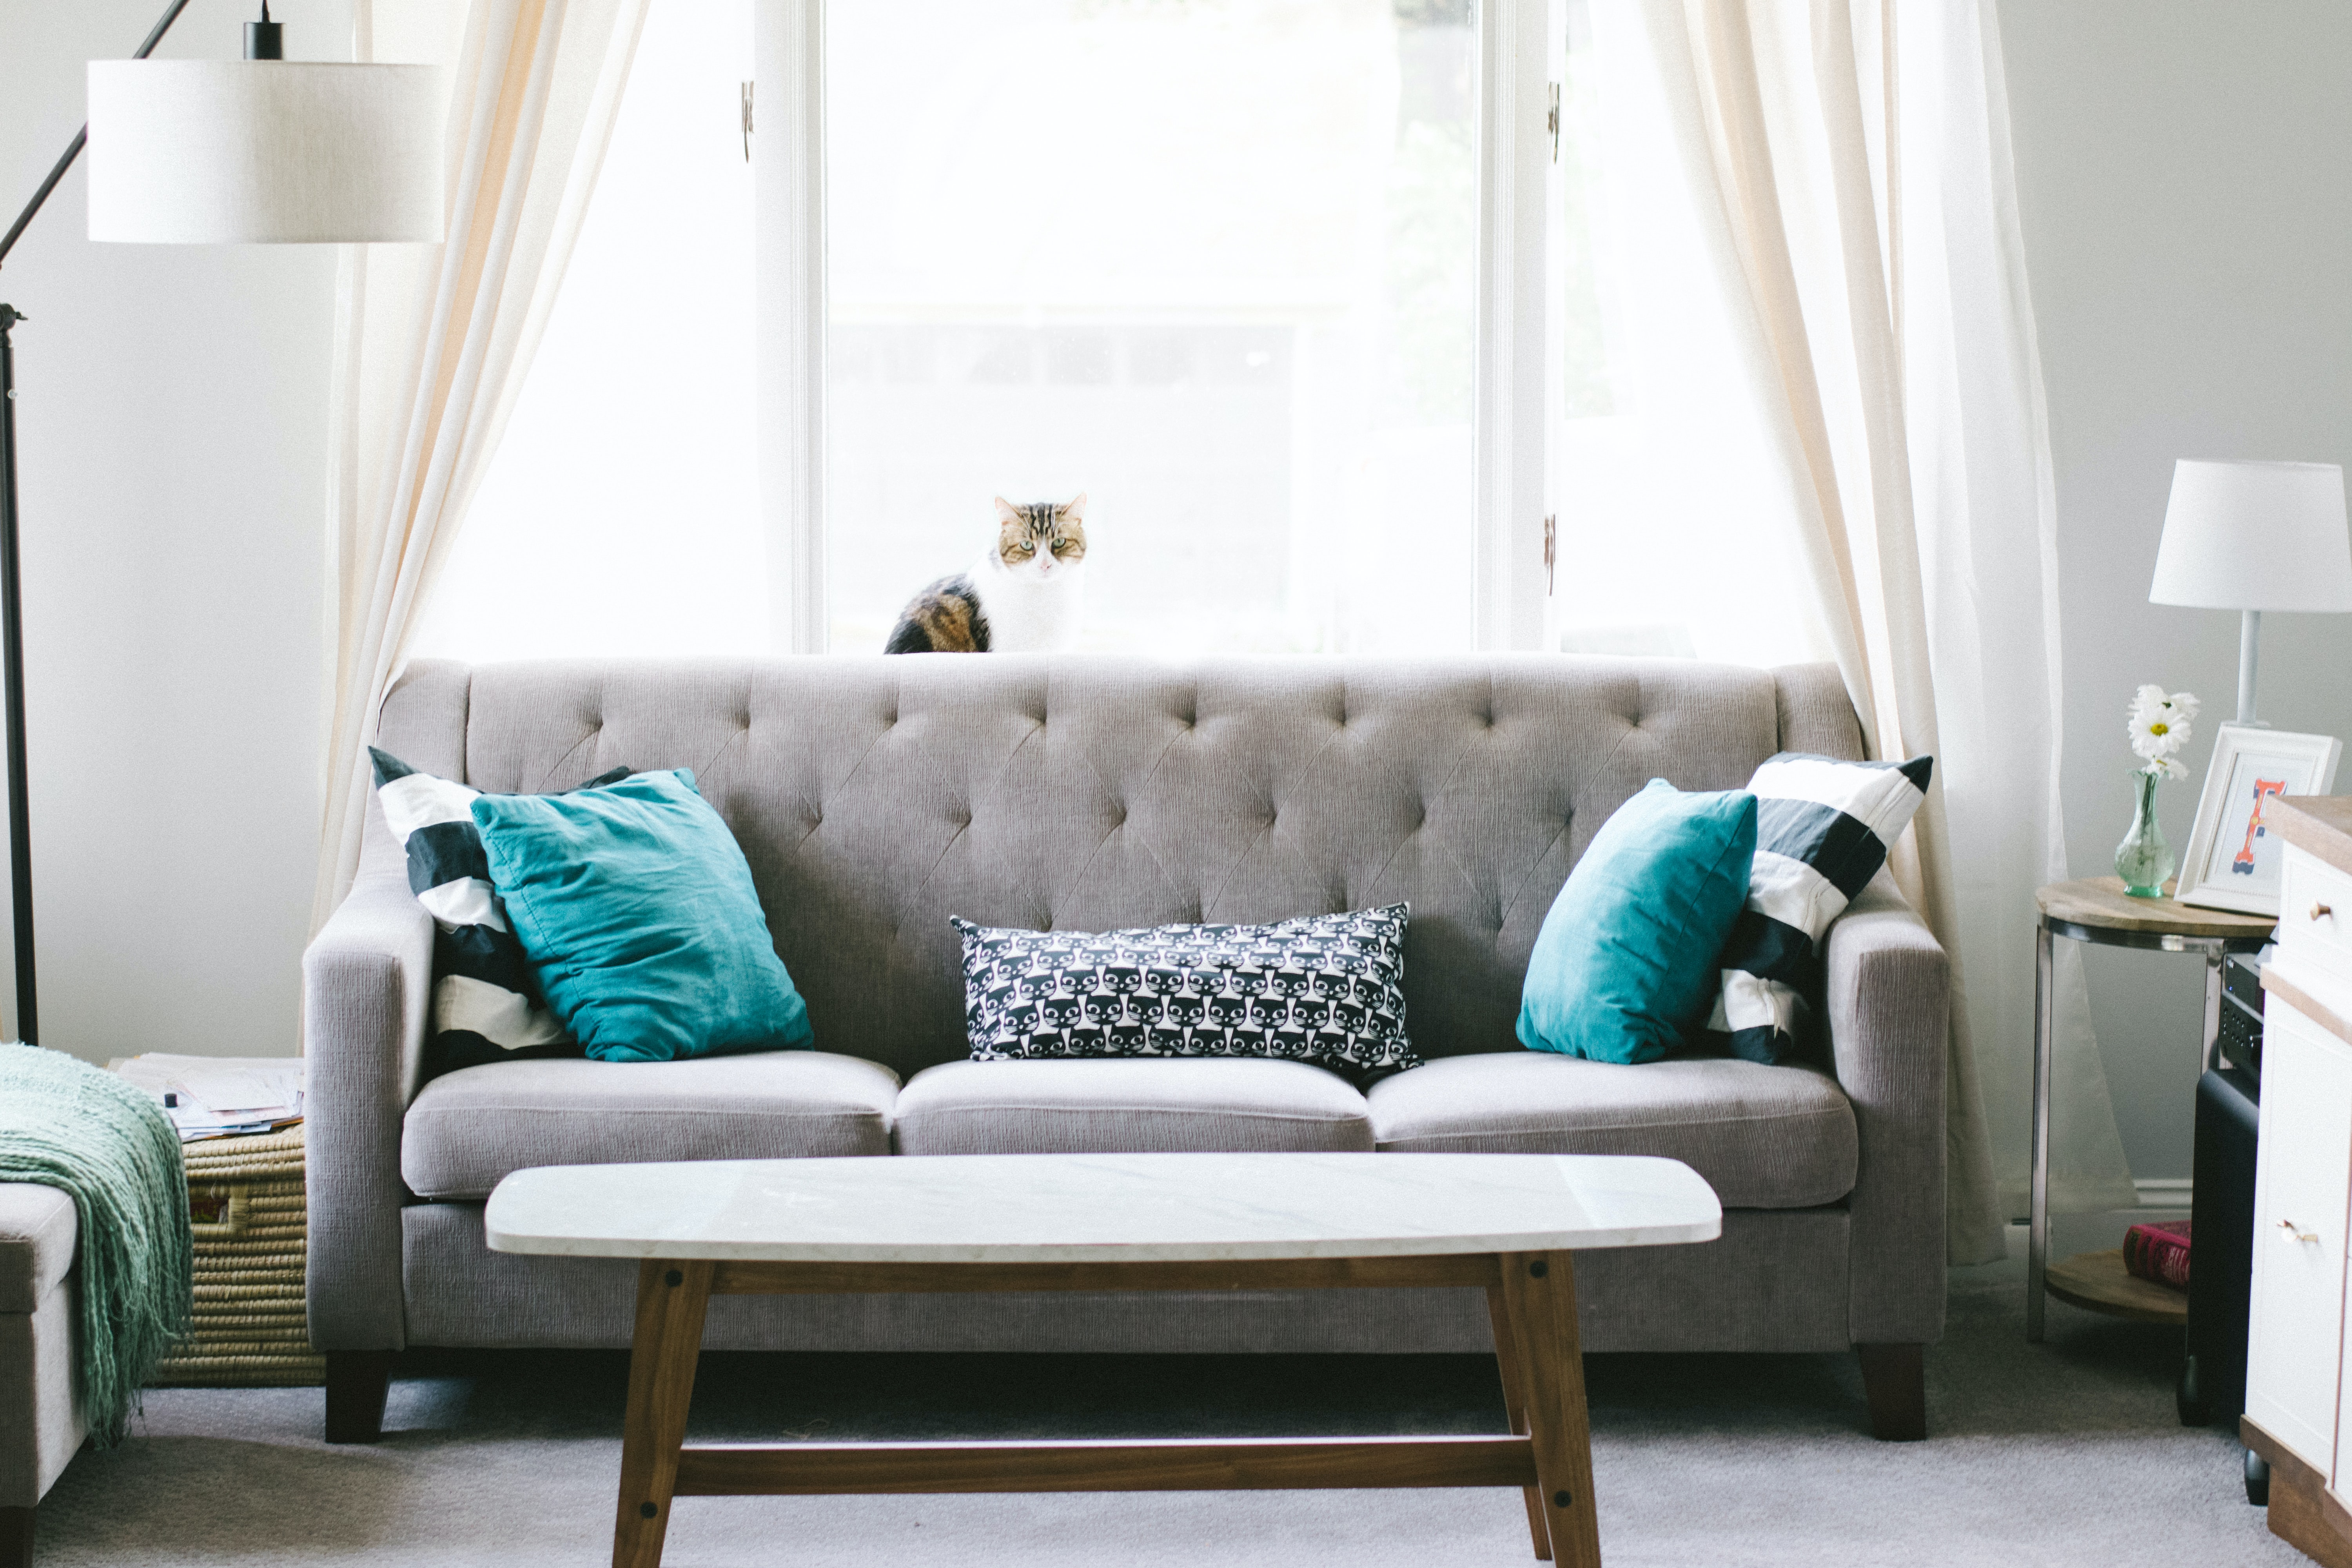 100 Sofa Pictures Hd Free Images Stock